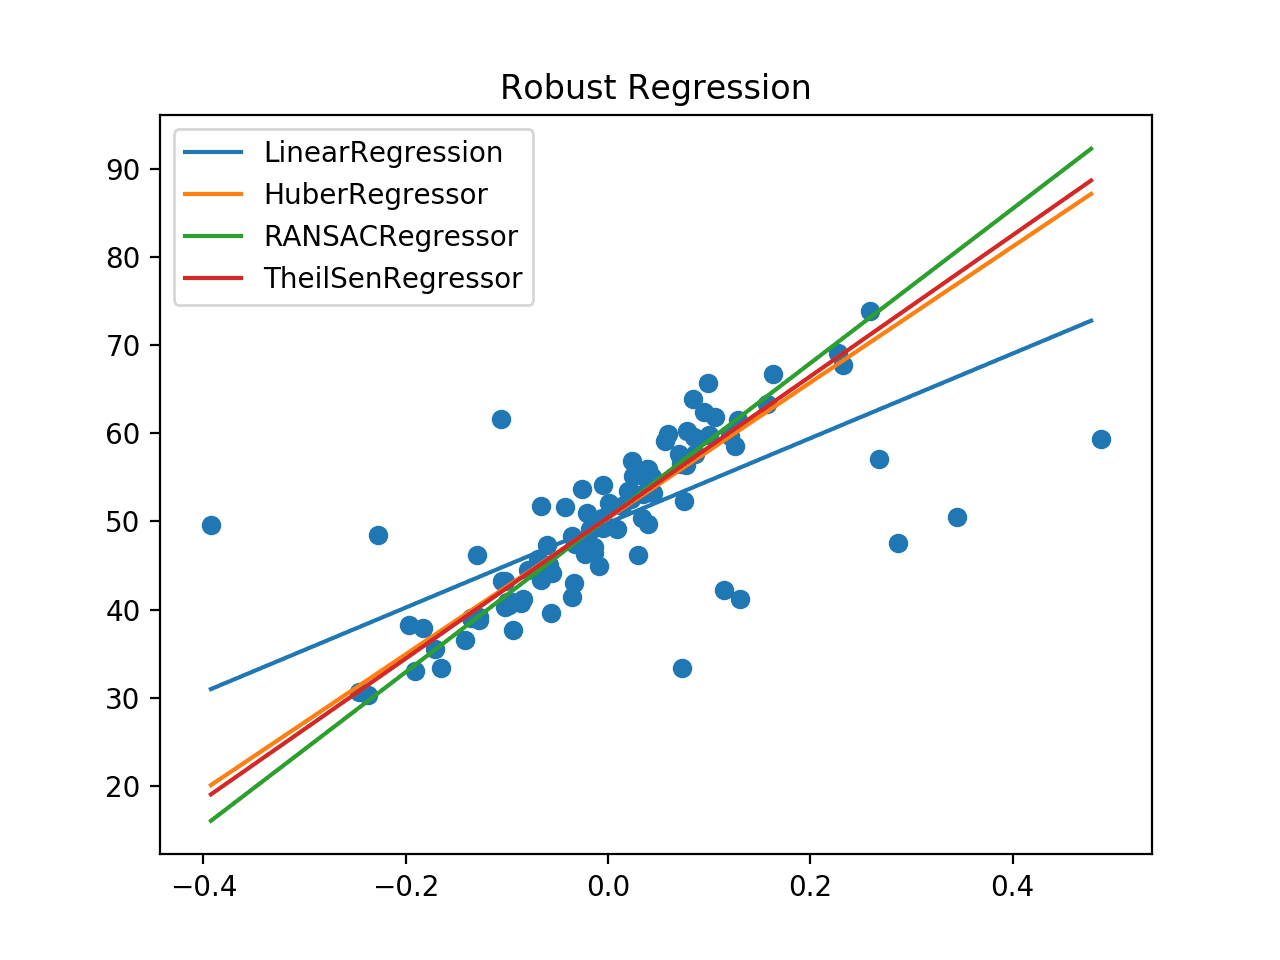 Comparison of Robust Regression Algorithms Line of Best Fit